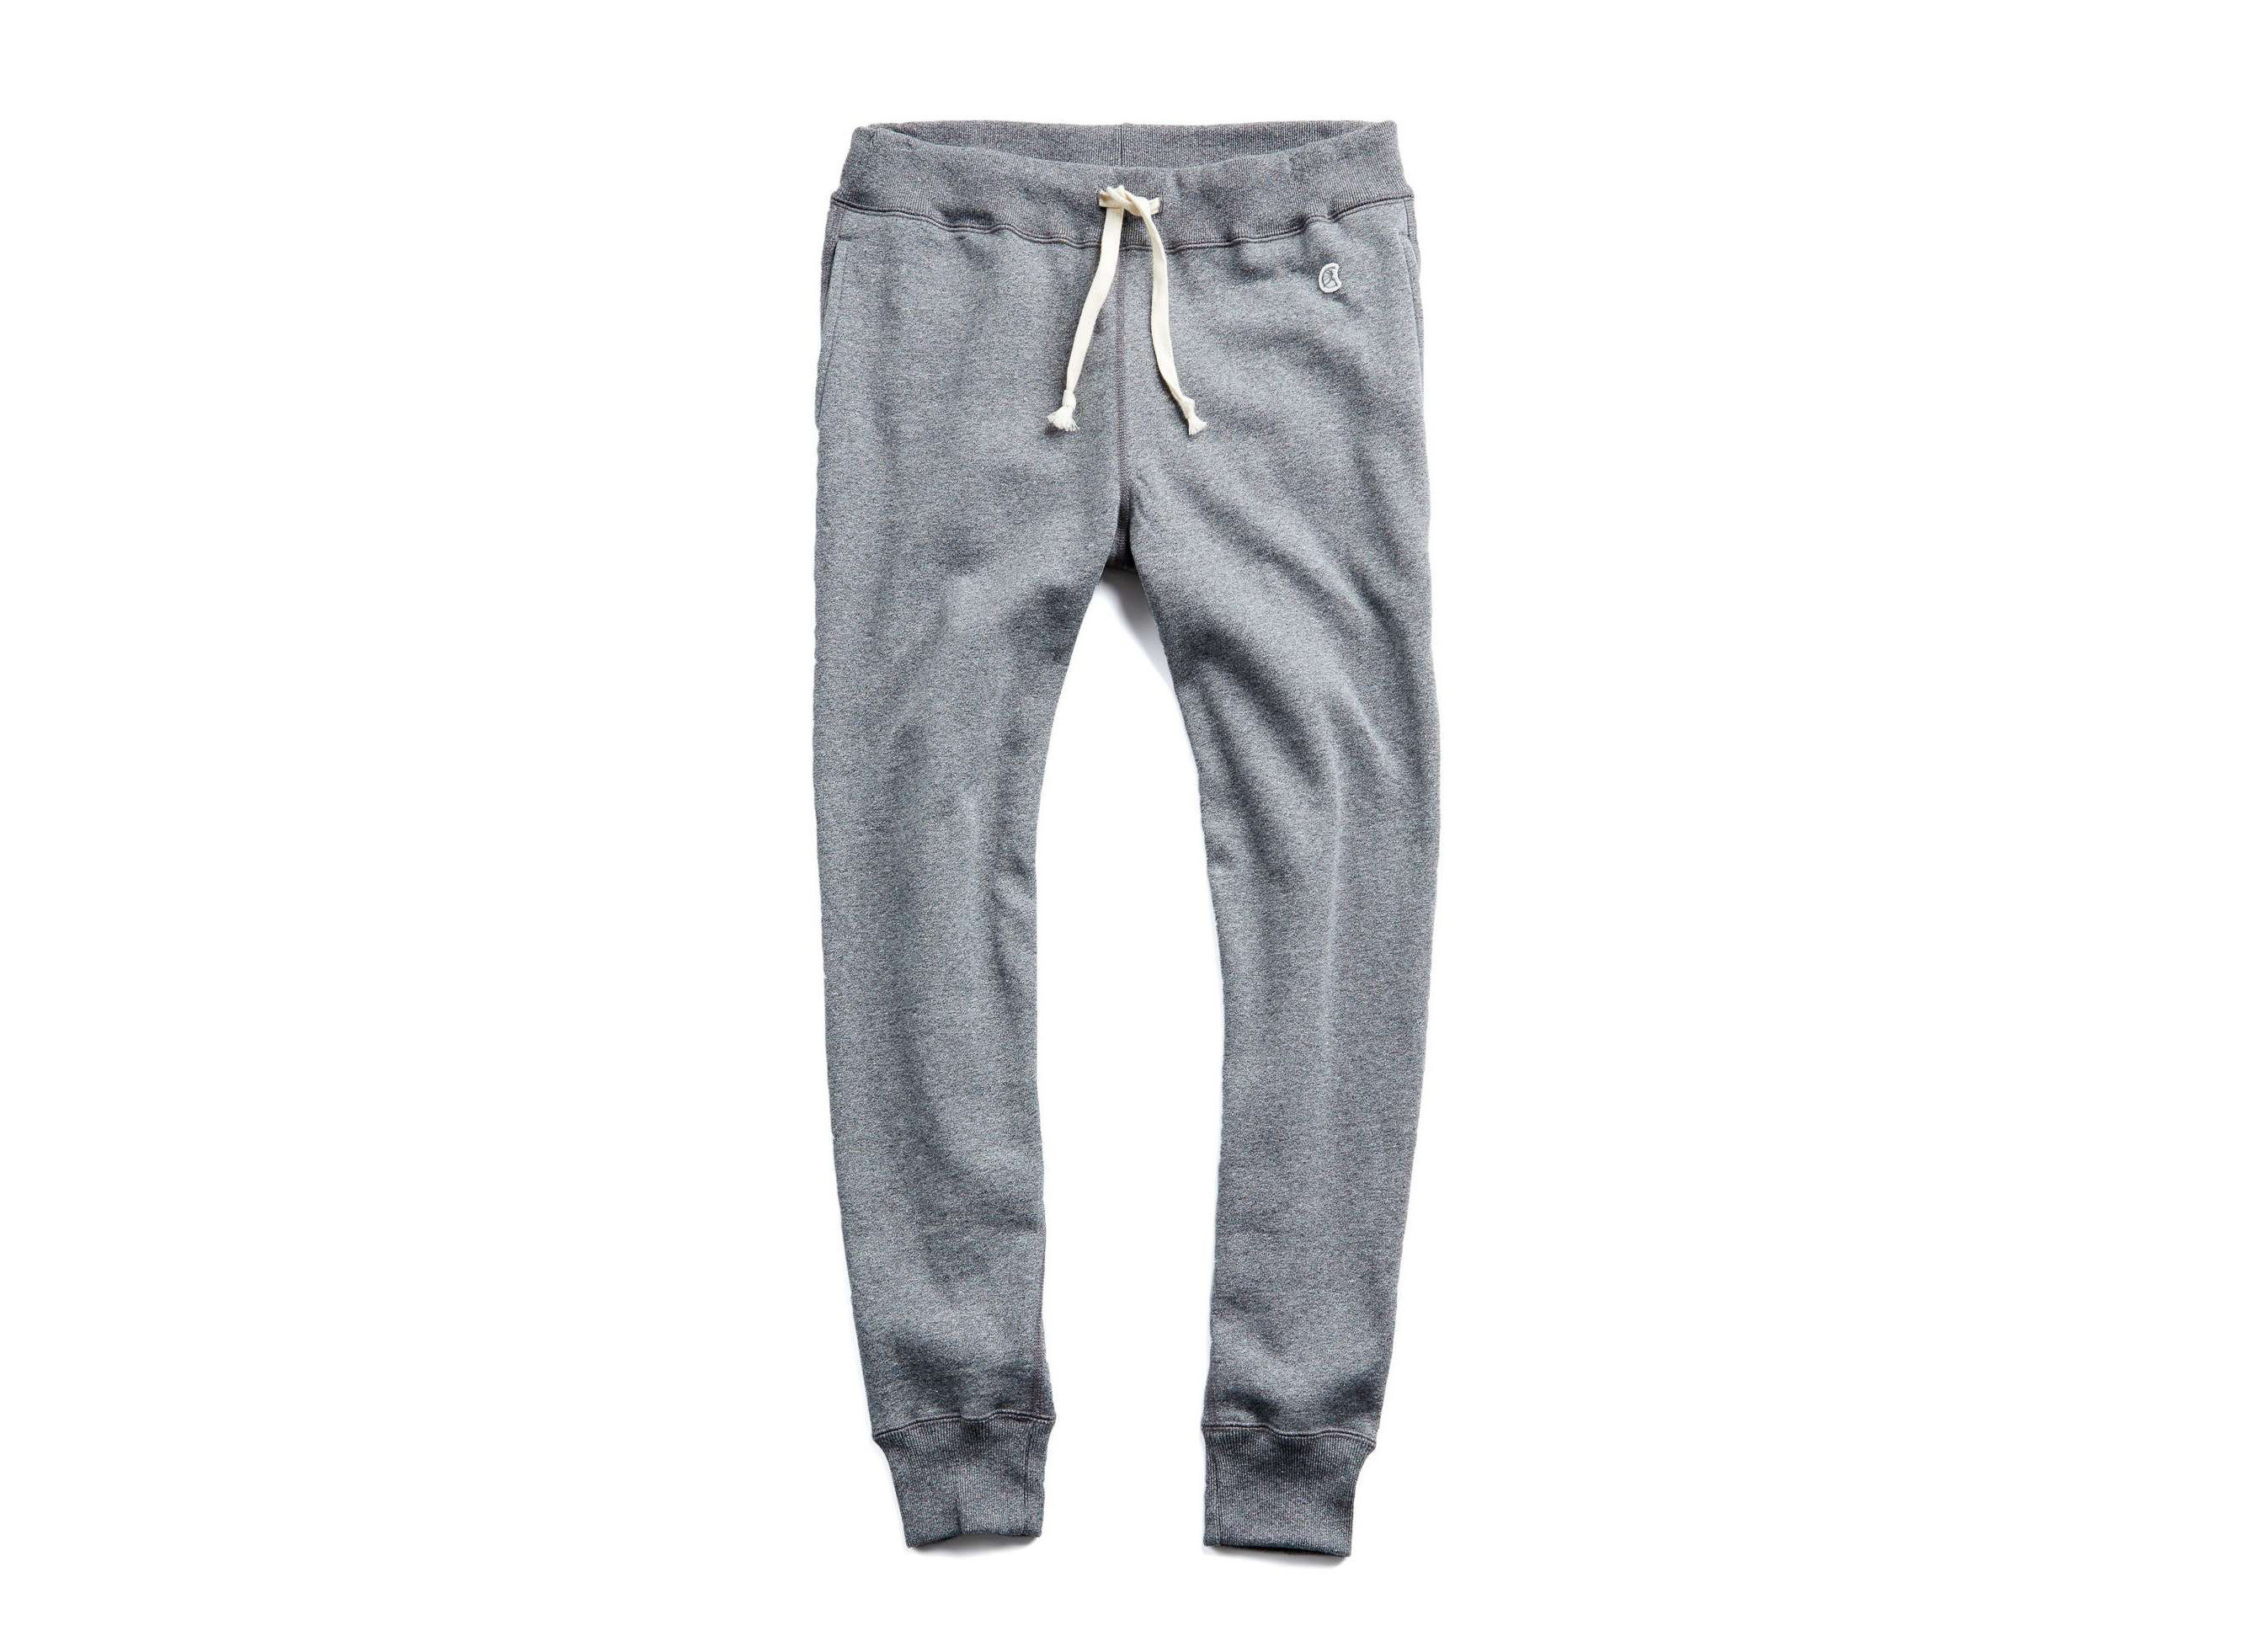 Travel Shop clothing trouser wearing man pocket active pants trousers product male